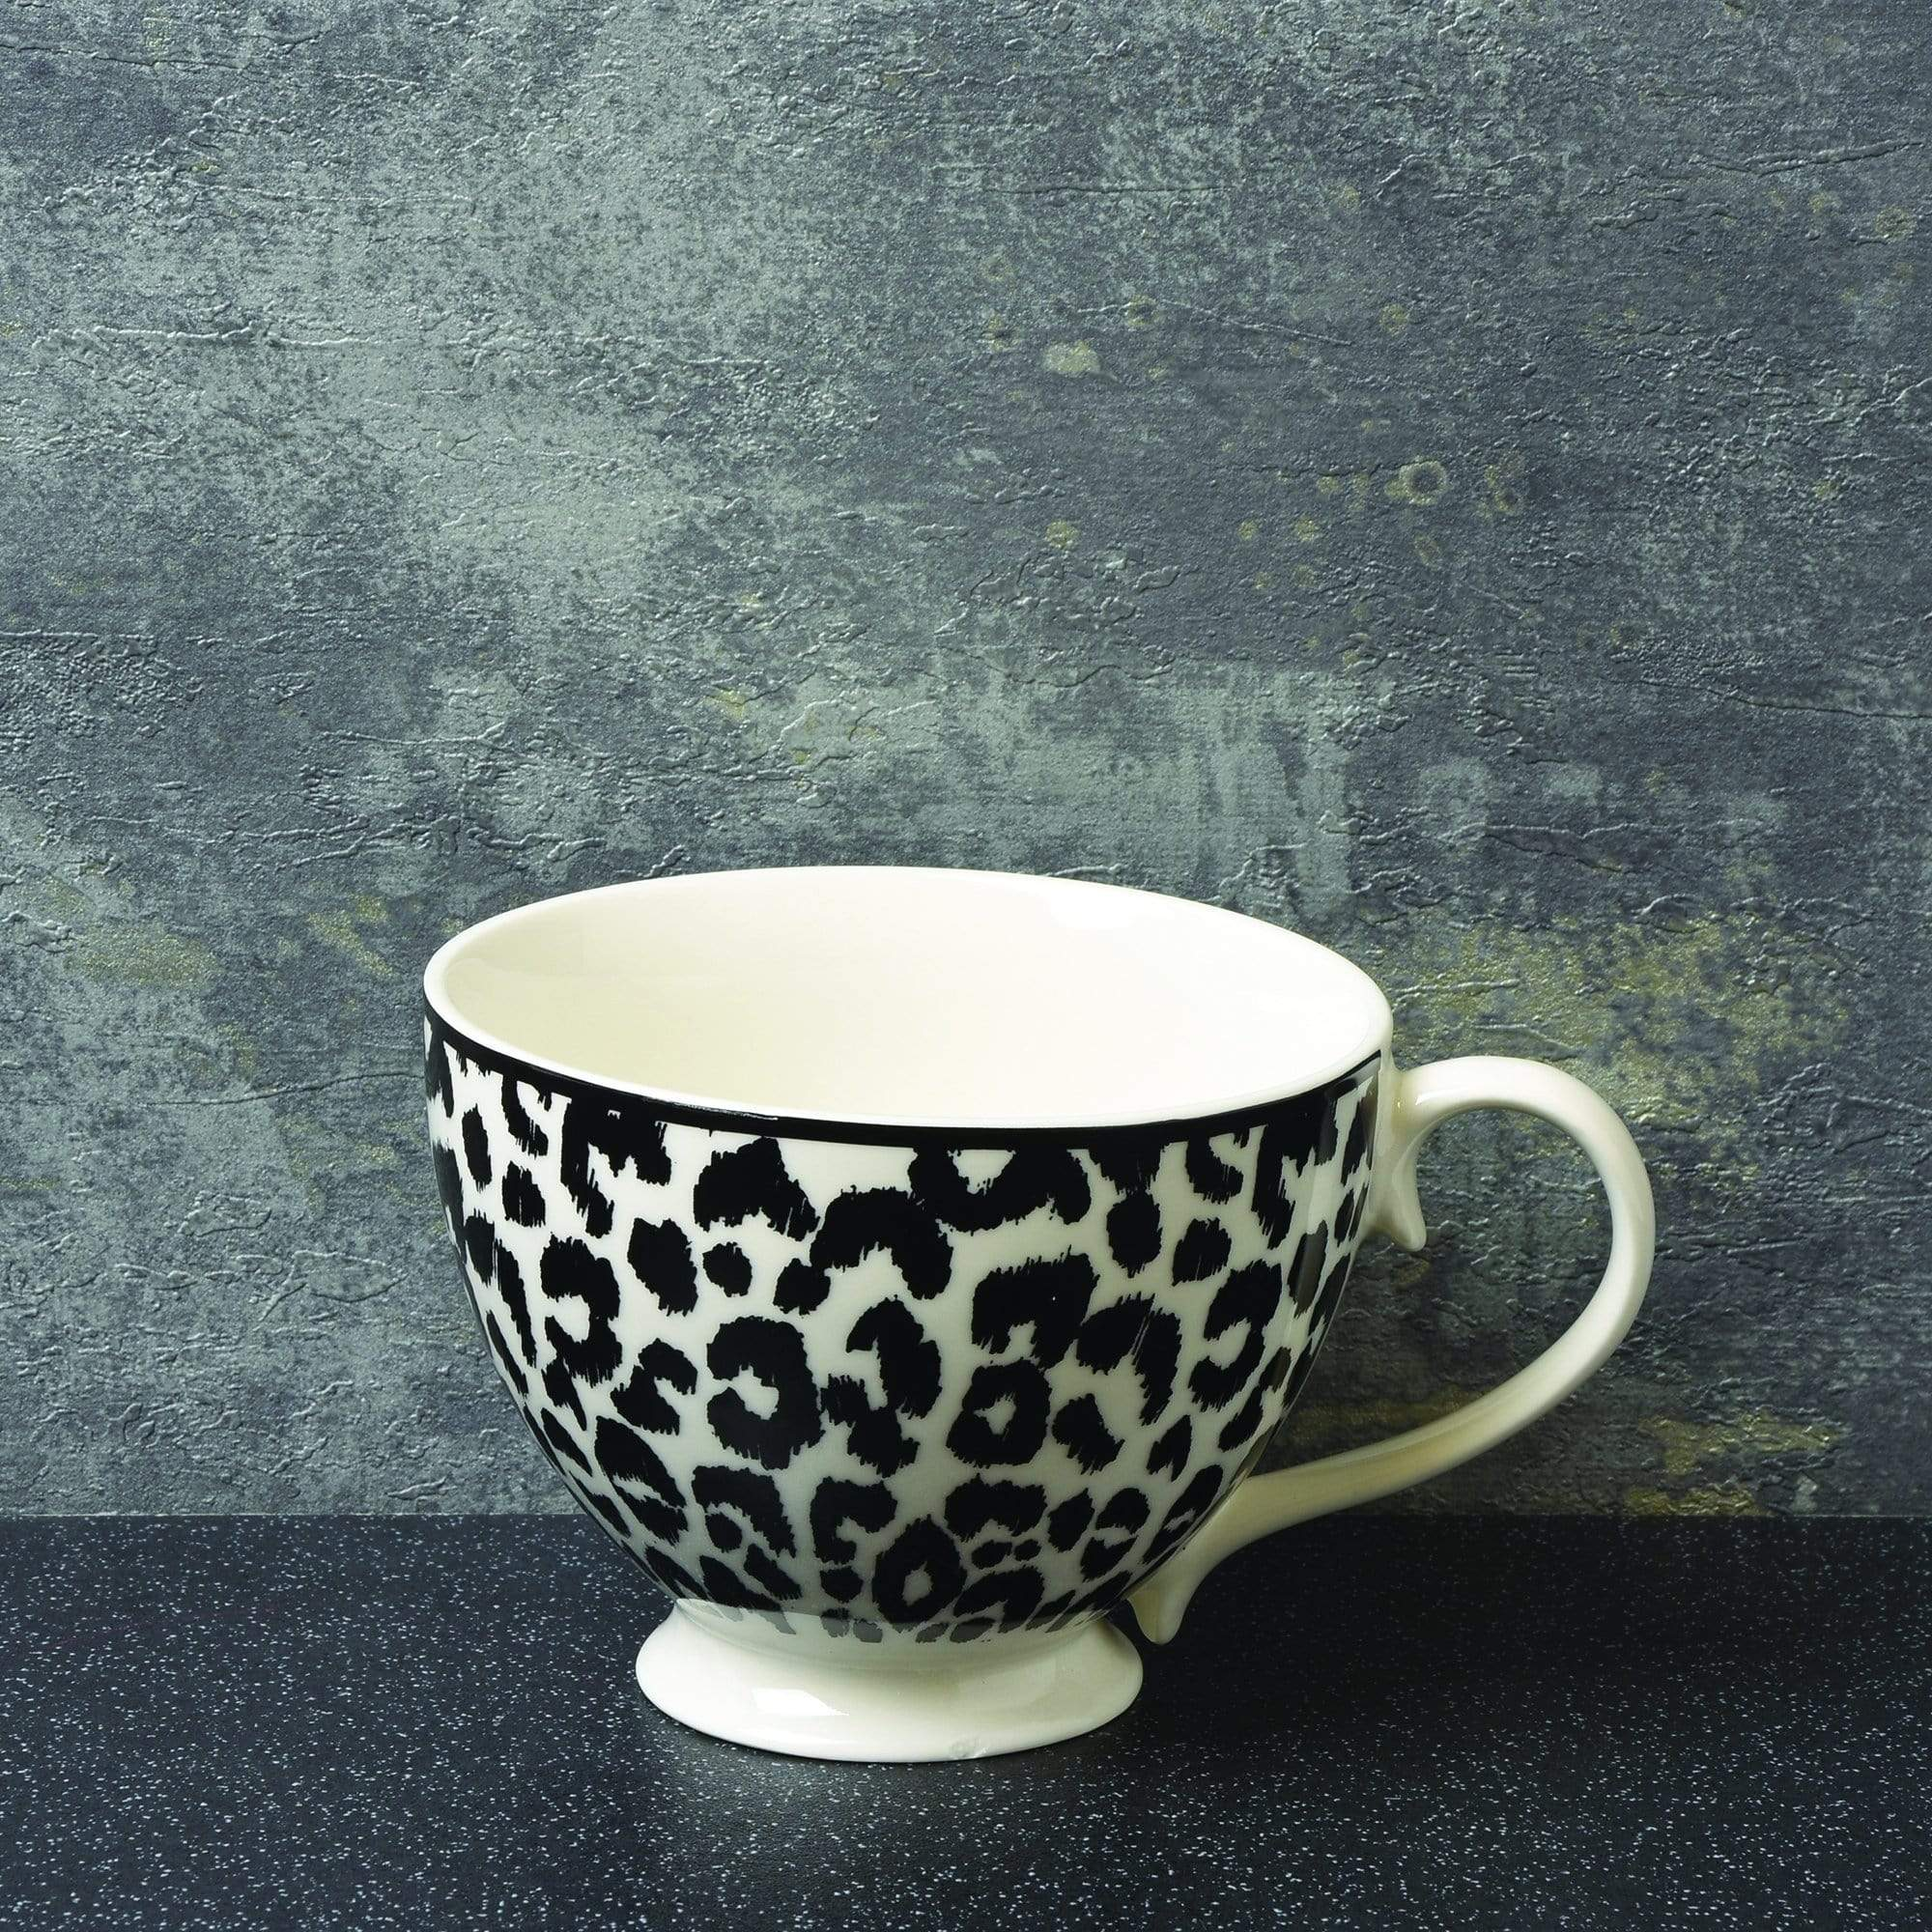 Animal Luxe Footed Mug Leopard Print Black 6PK